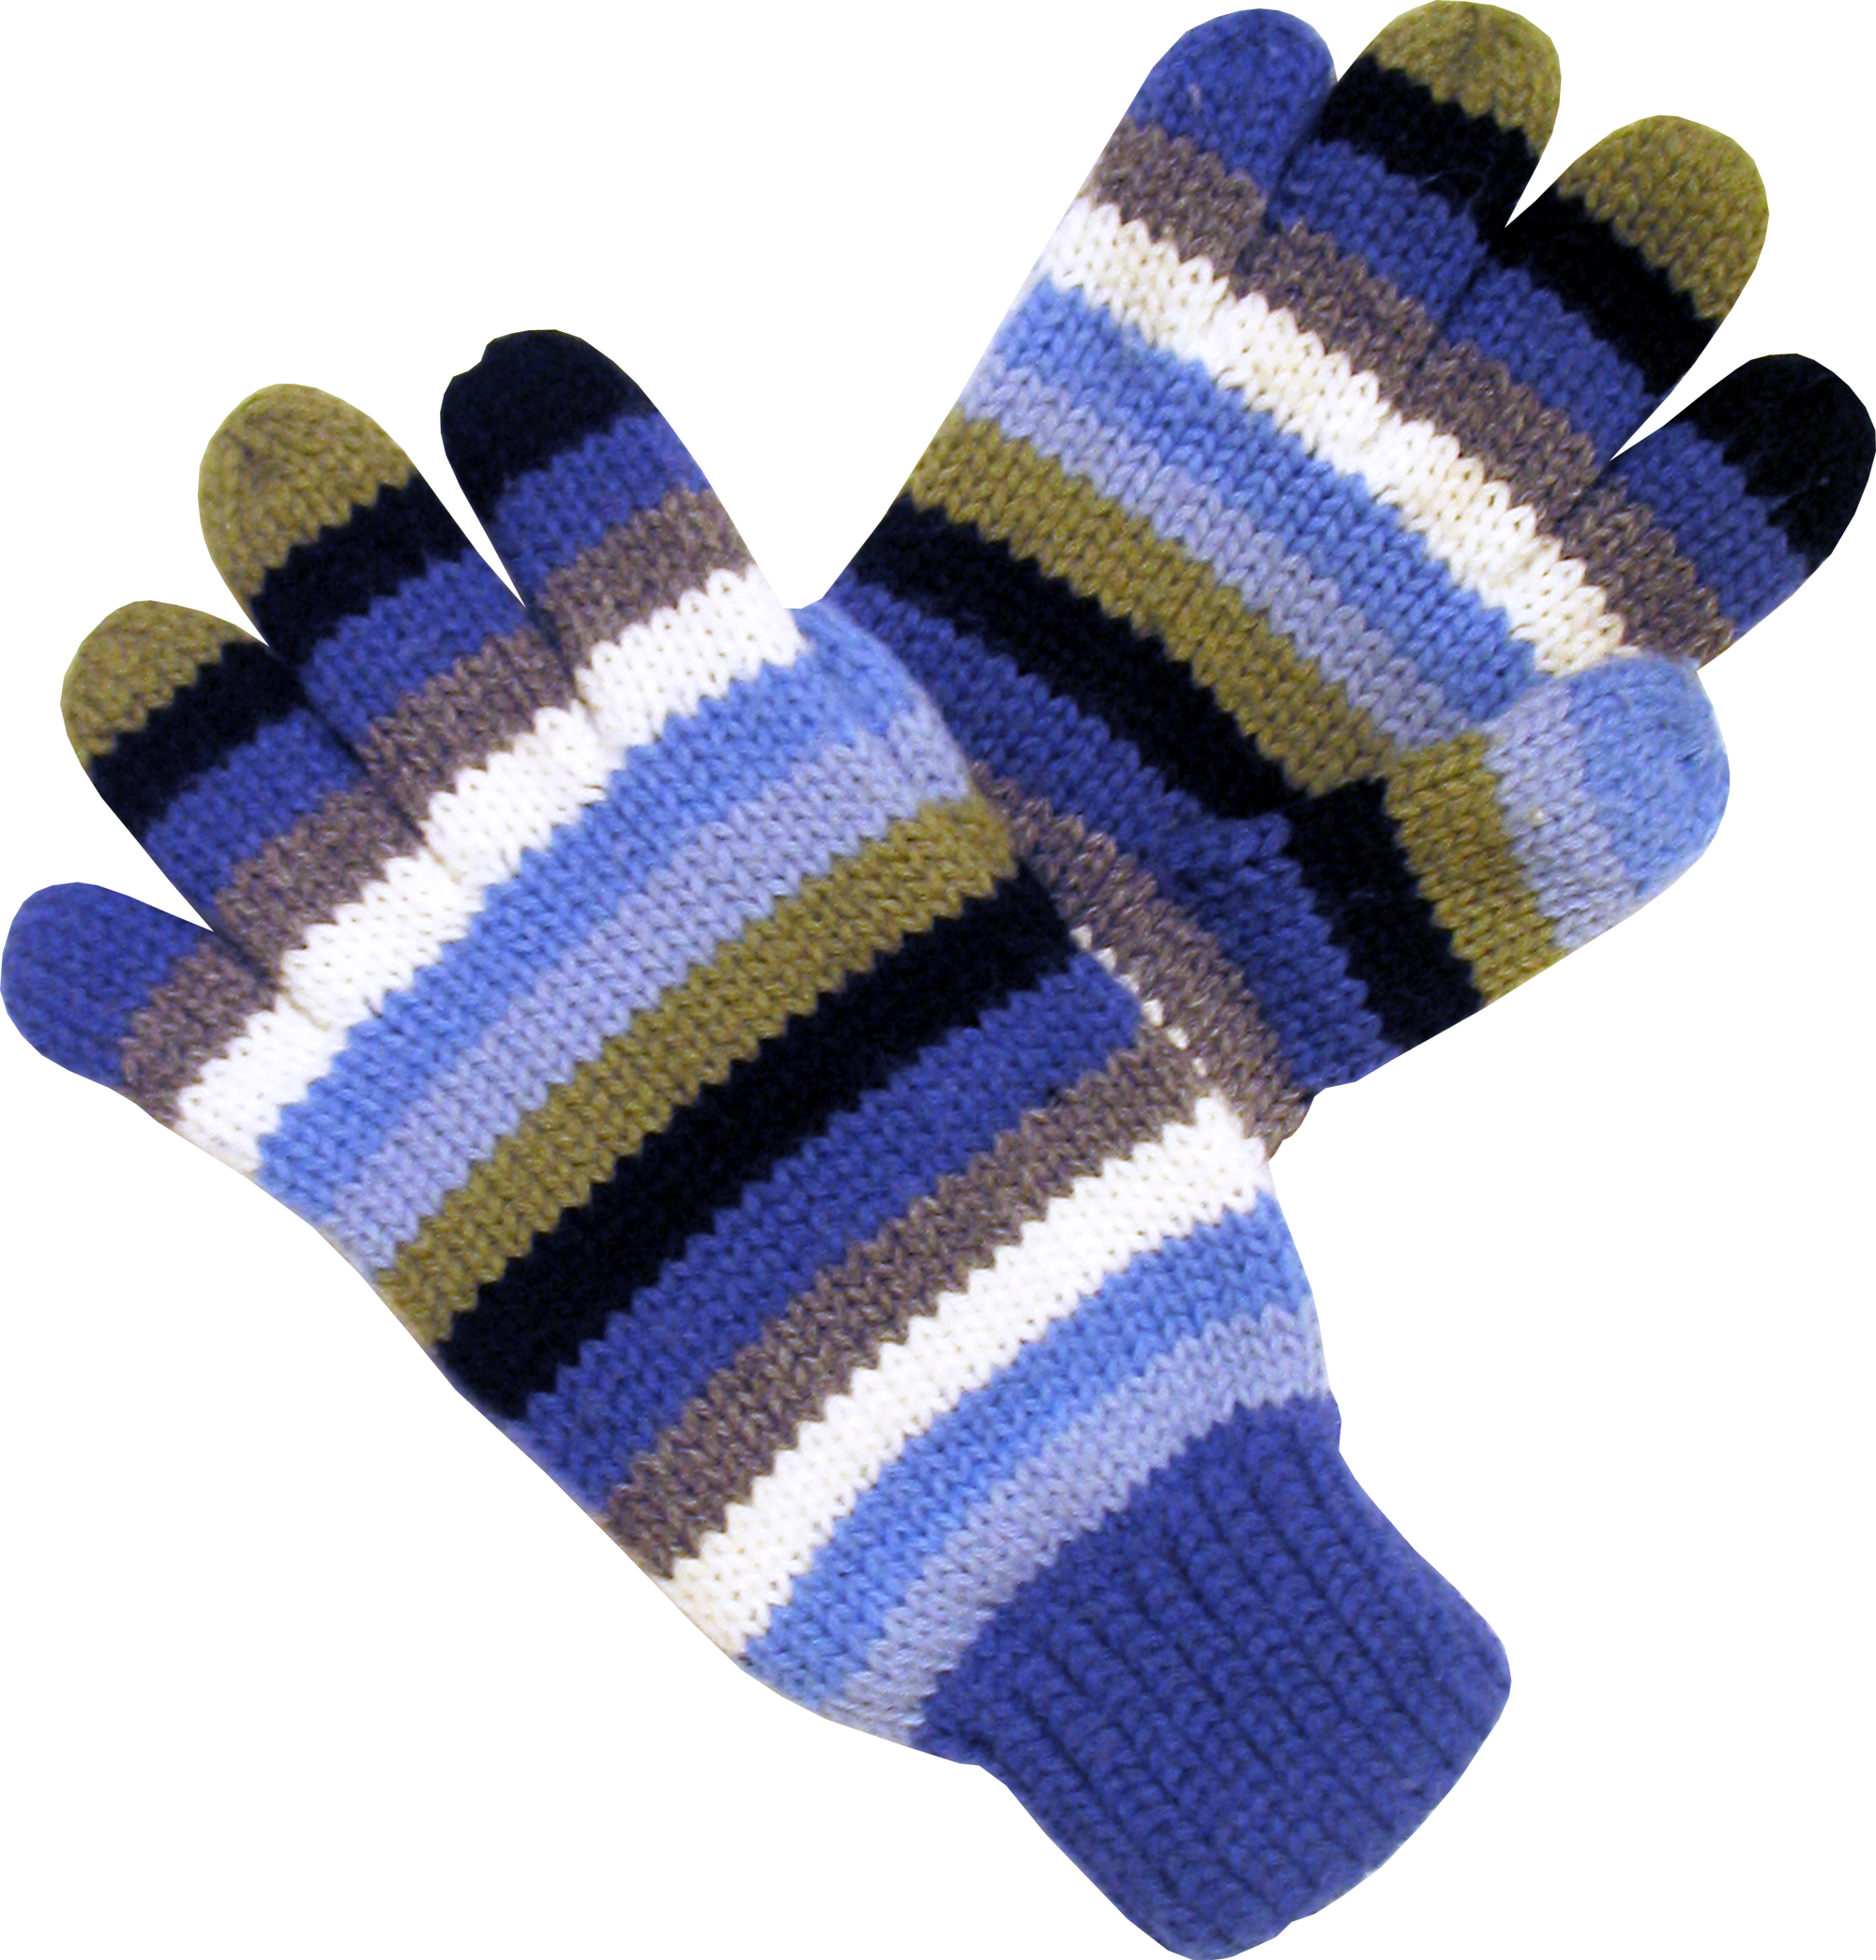 Winter gloves png image. Mittens clipart hand glove